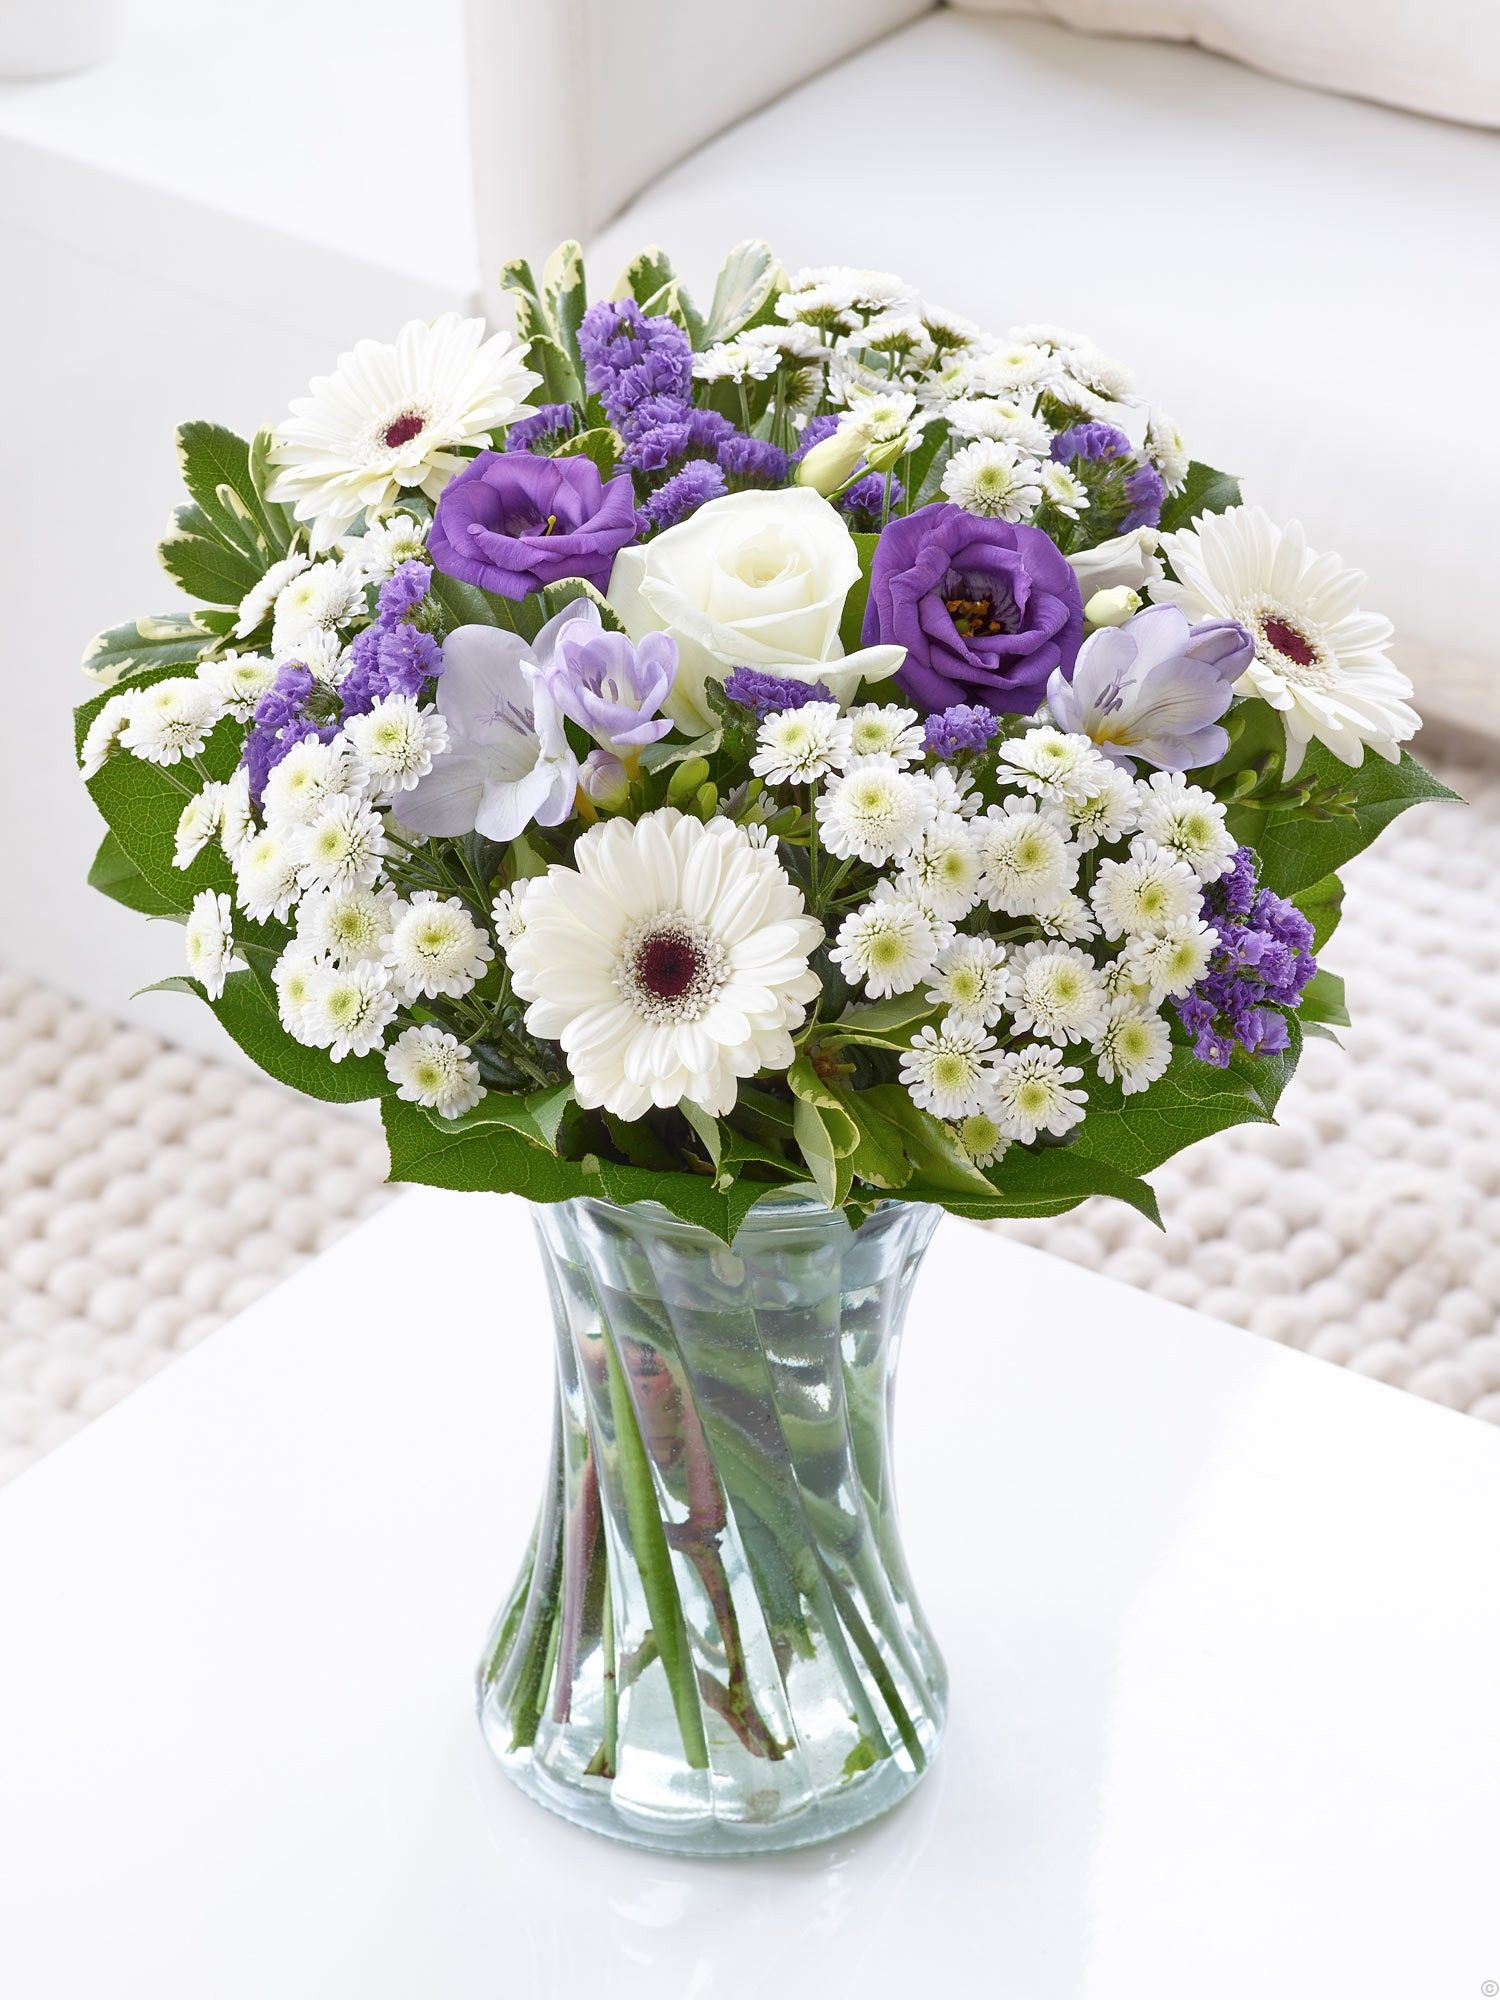 Blue flowers and wite flowers, perfect for a new baby boy